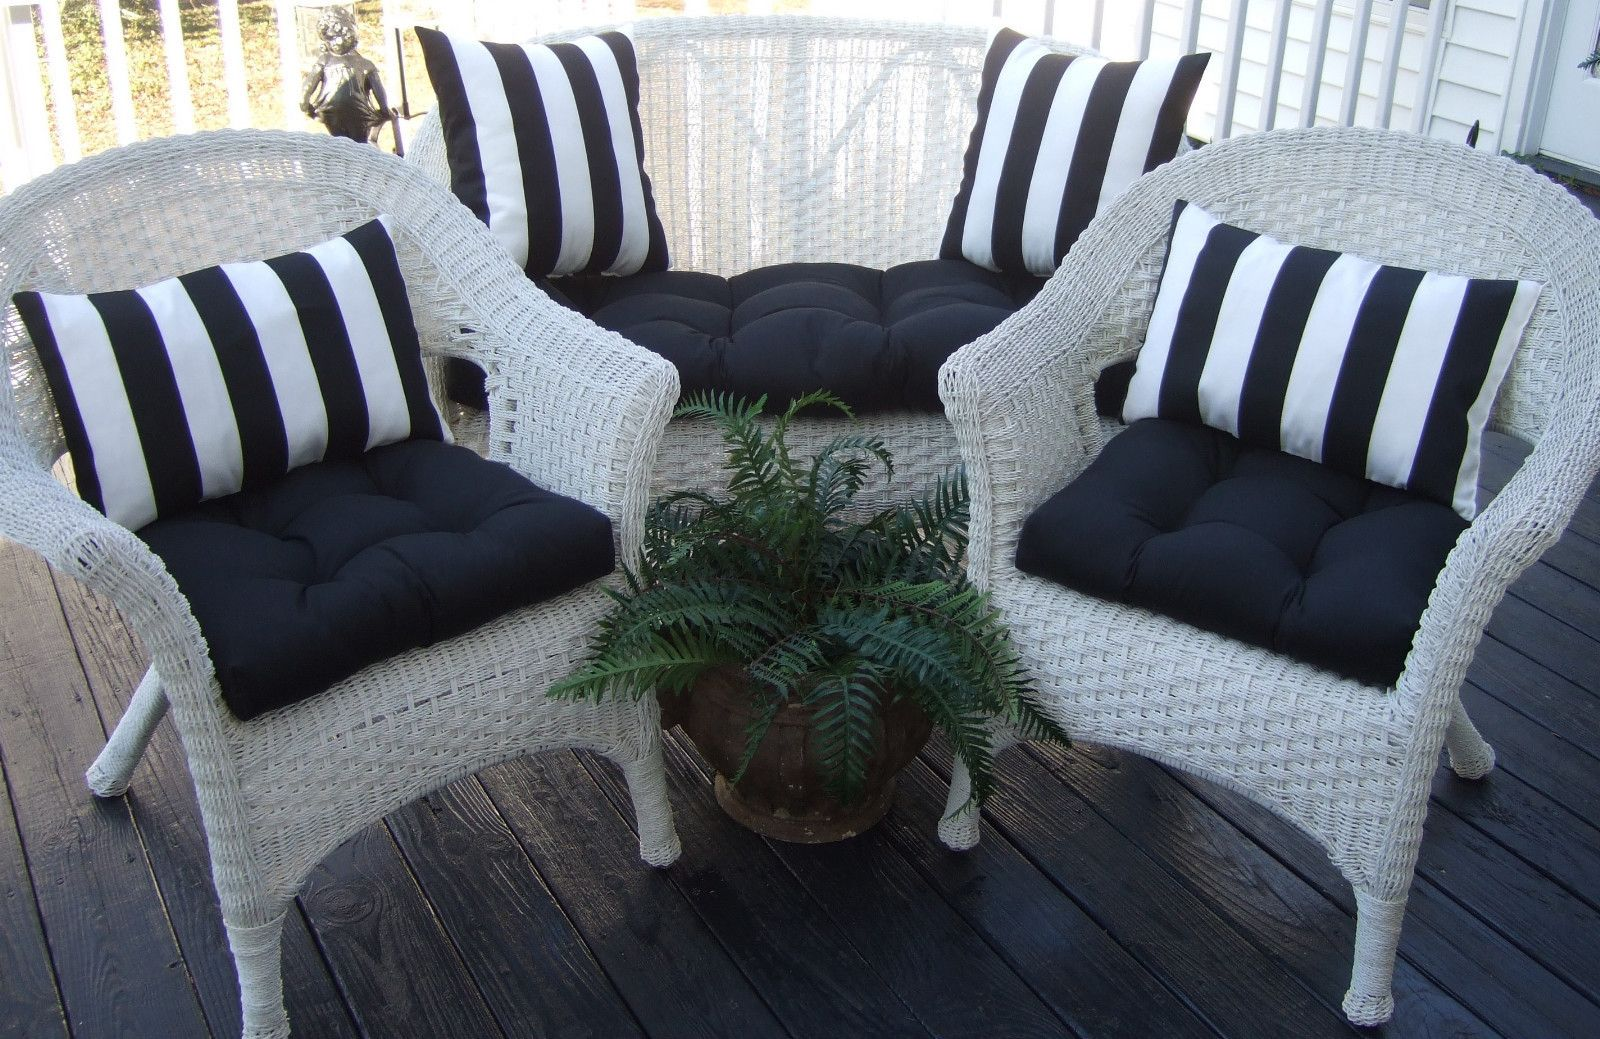 Wicker outdoor cushions black solid and black & white stripe pillows ...